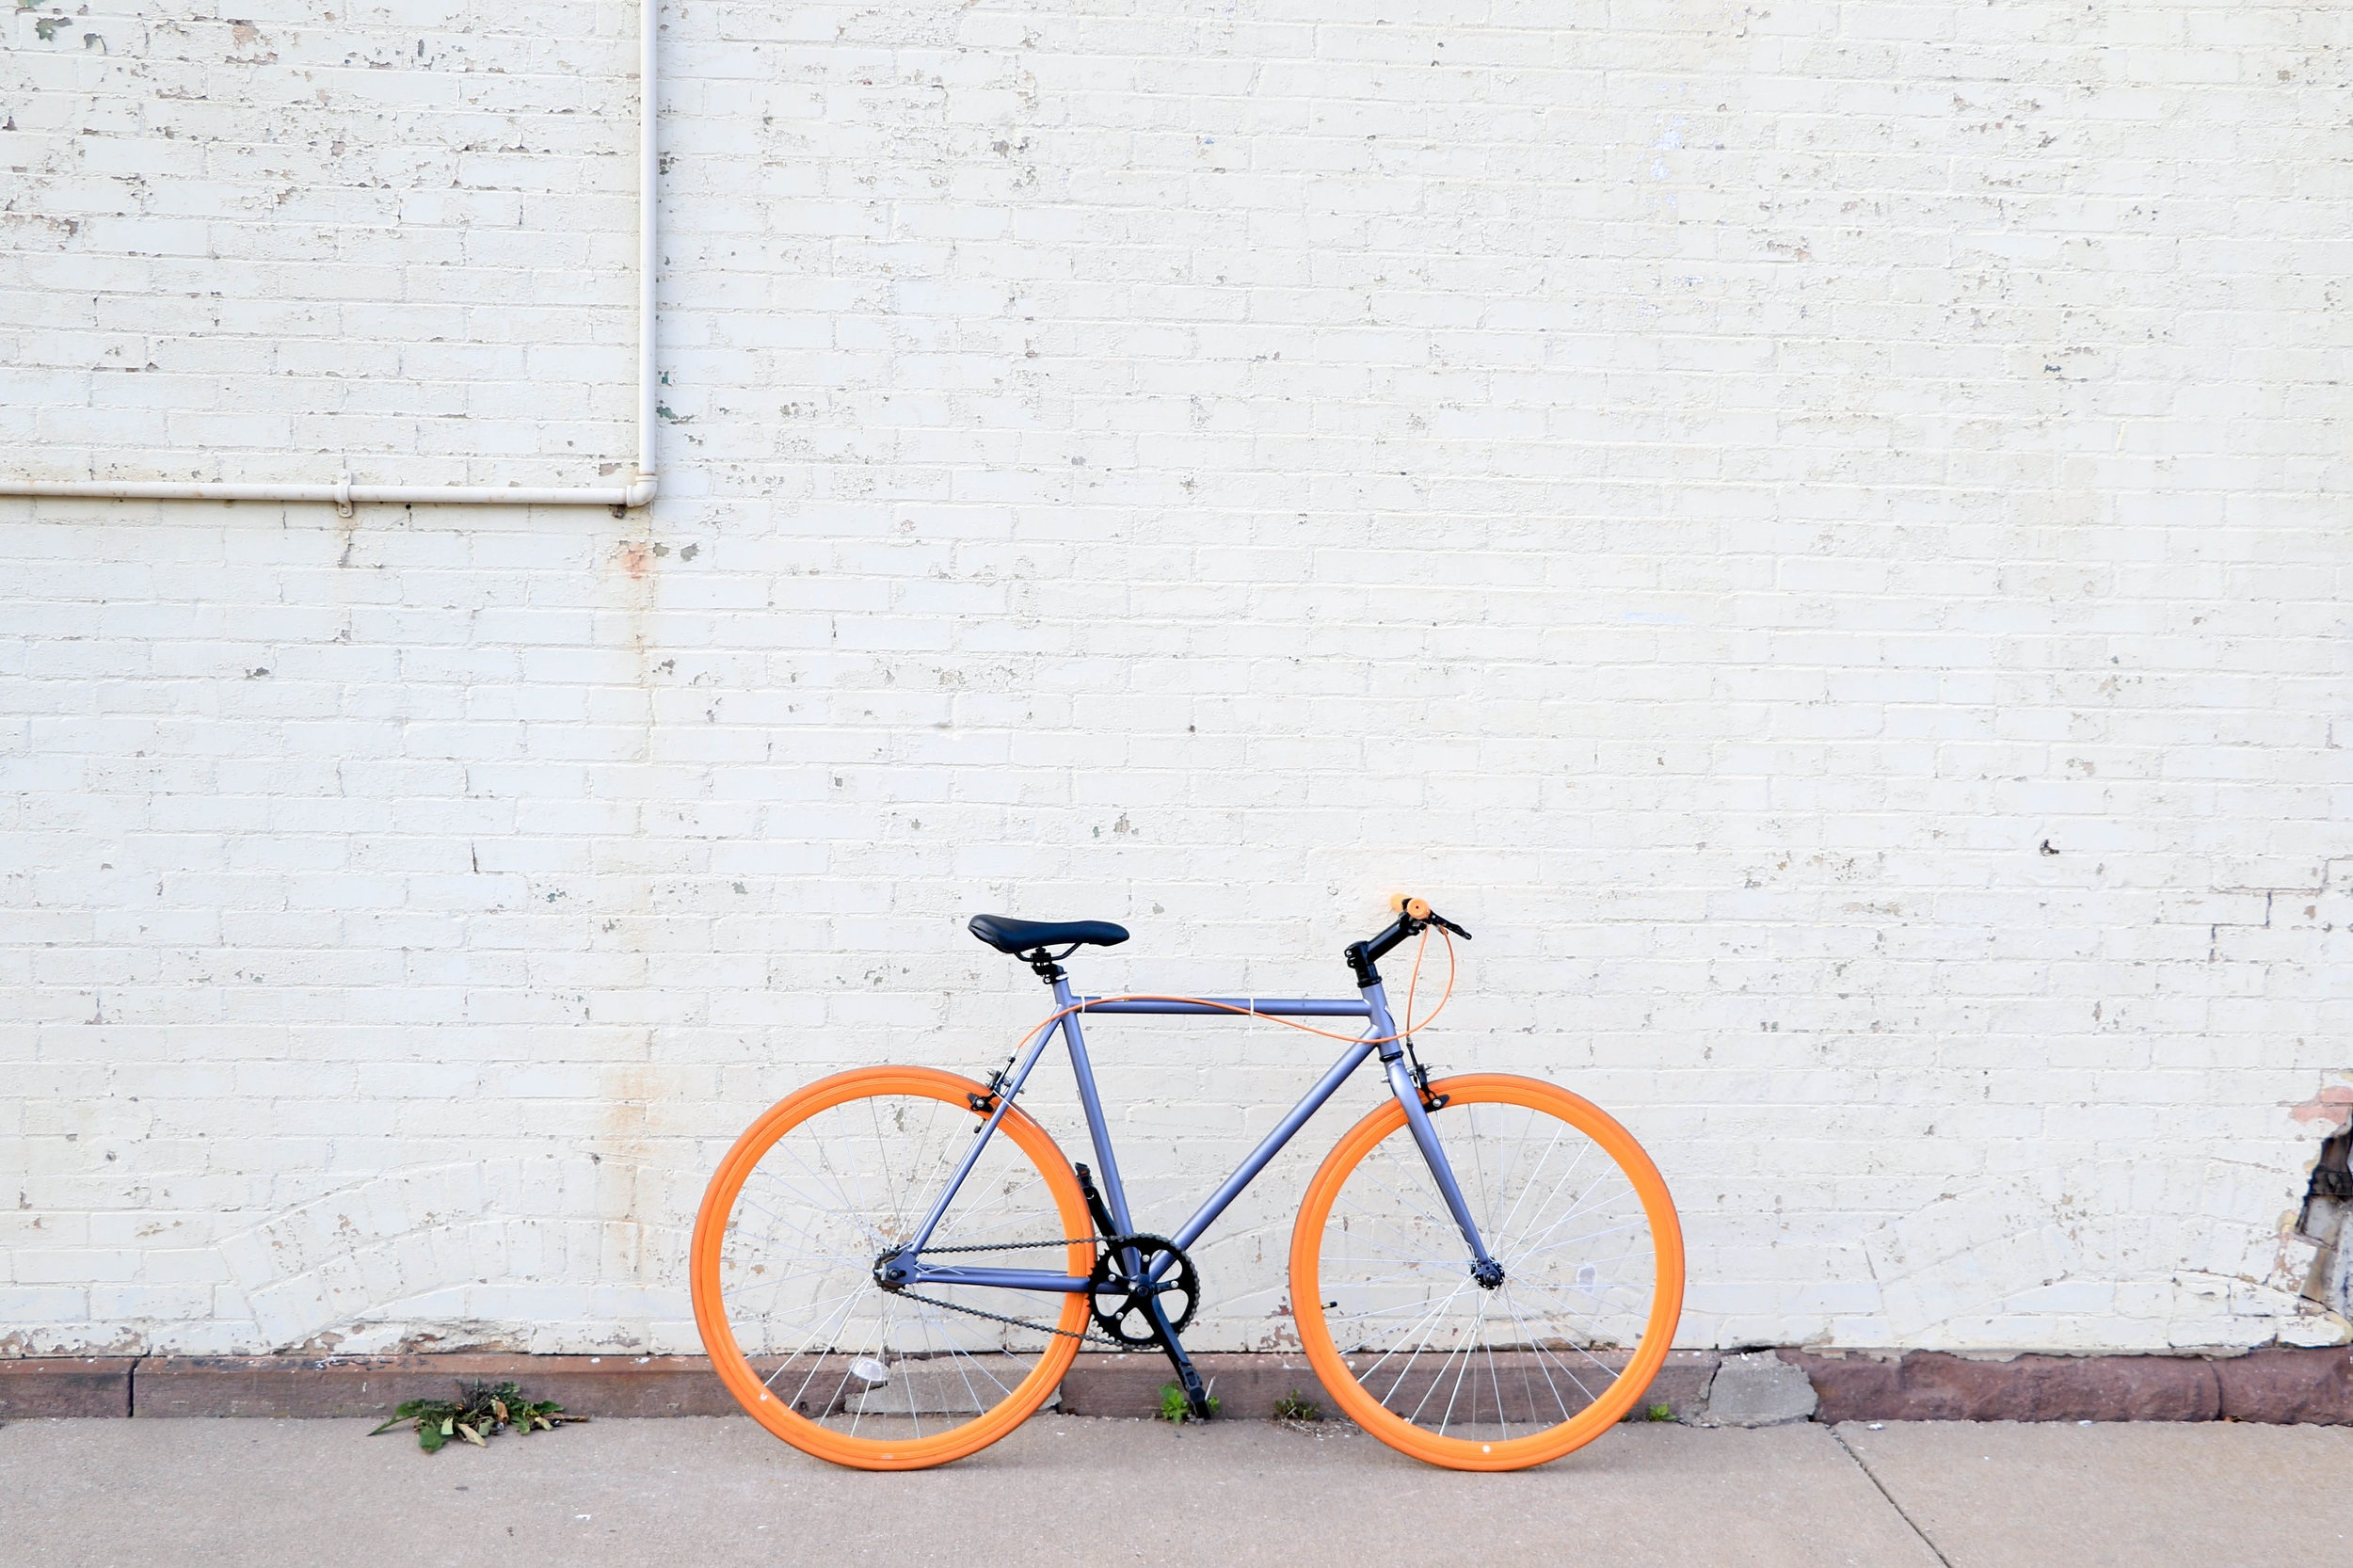 Orange - Orange is creative, youthful, and enthusiastic. If you want an attention-getting hue, try orange. It's confident and fun. Orange is especially popular for kid-related brands.